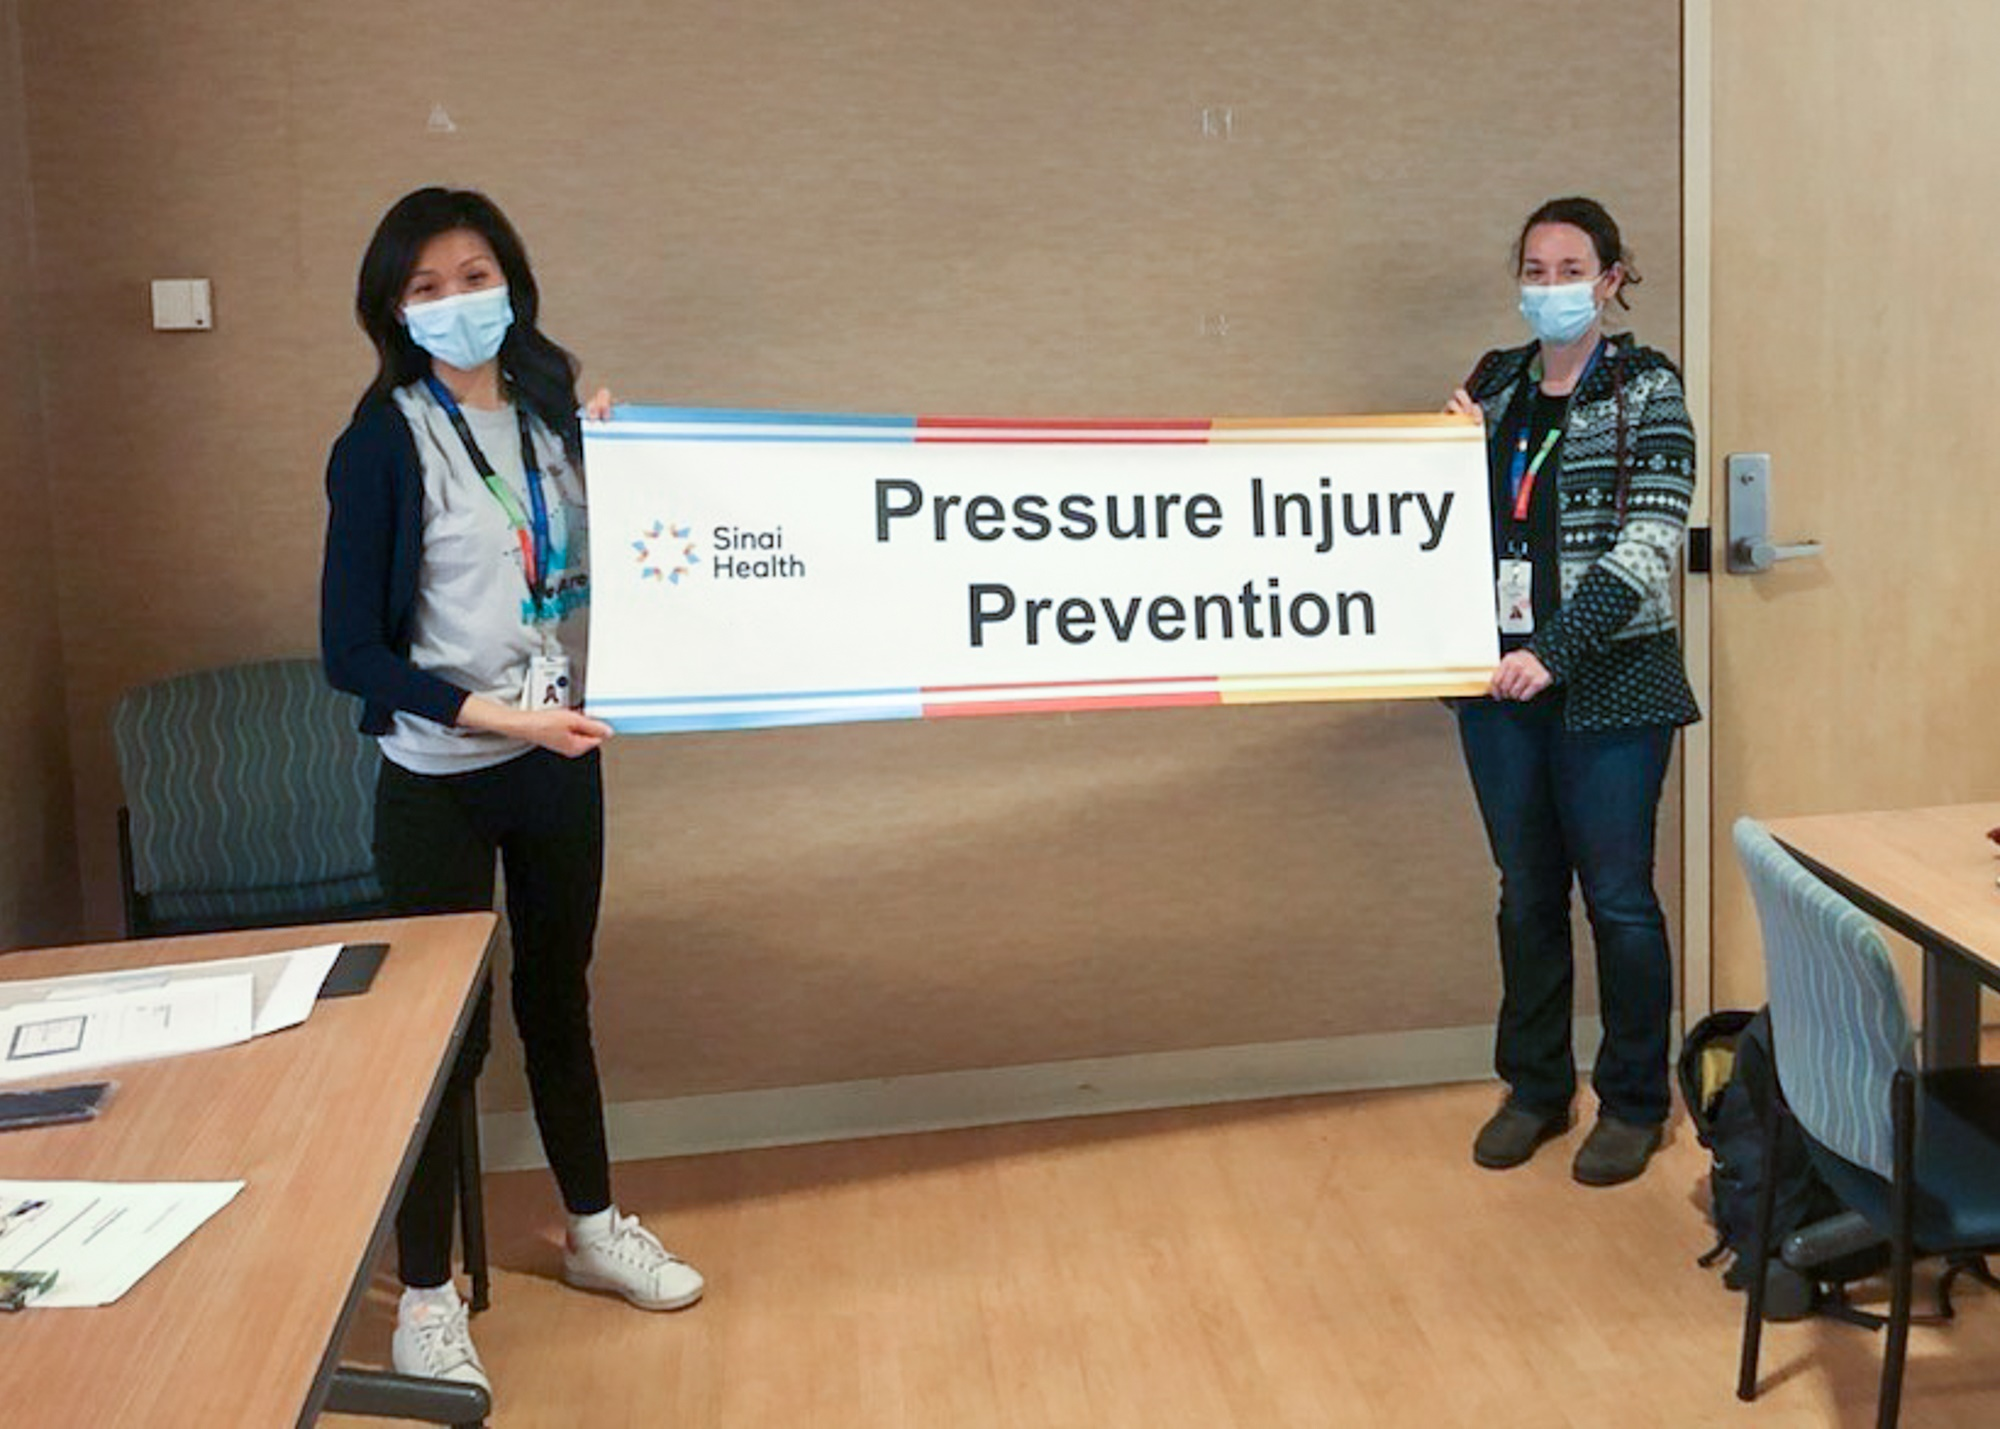 Two employees holding up a banner that says Sinai Health Pressure Injury Prevention